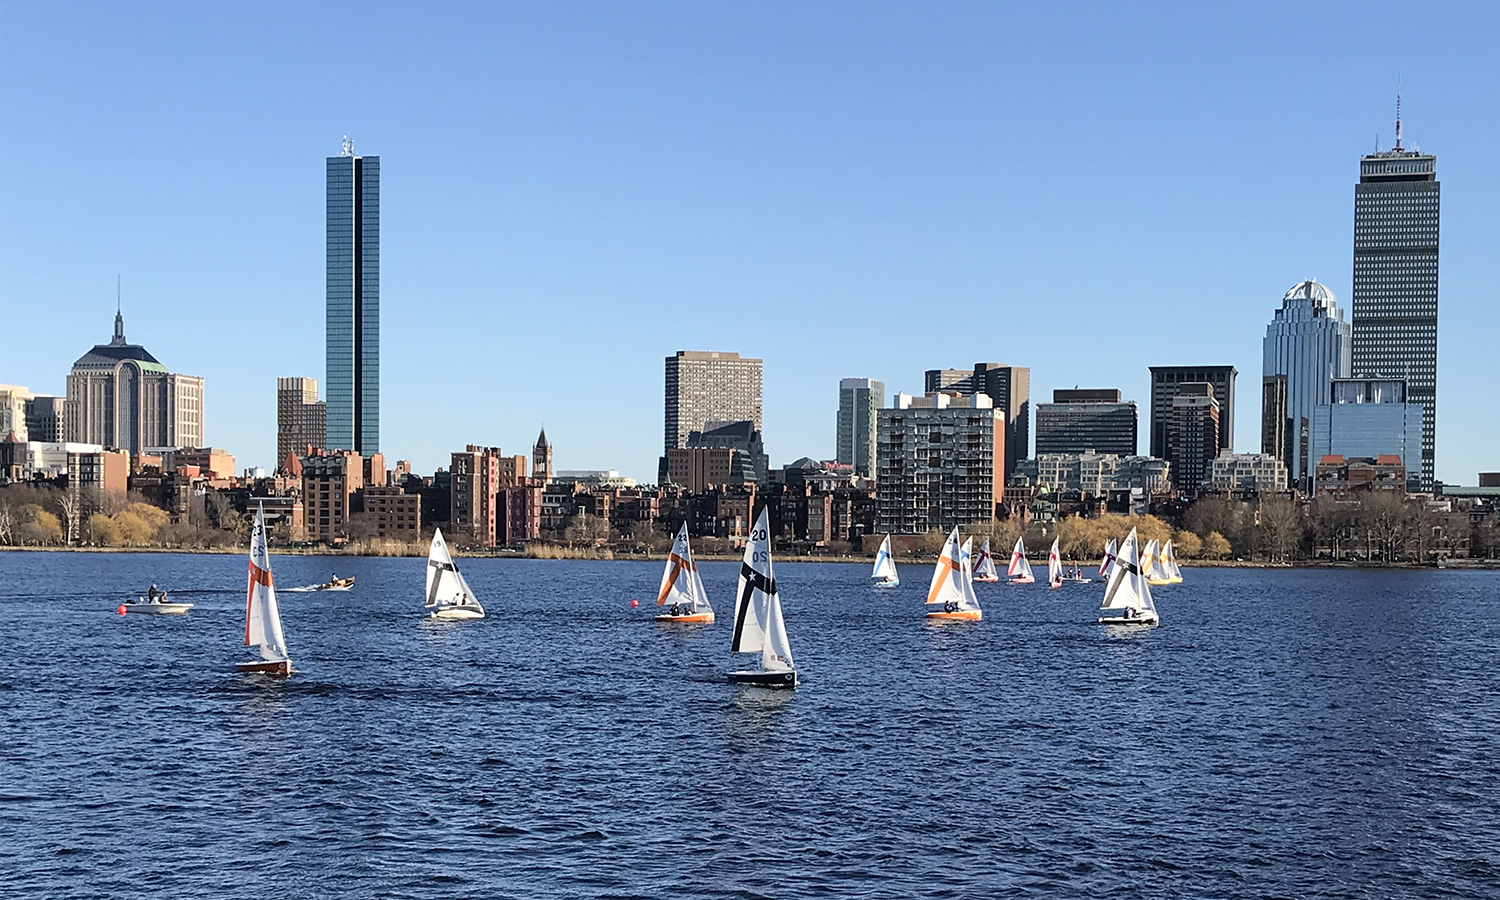 Members of the HWS Sailing team (black sails) compete during the Marchiando Team Race on the Charles River in Boston. The Colleges finished the weekend at eighth overall.